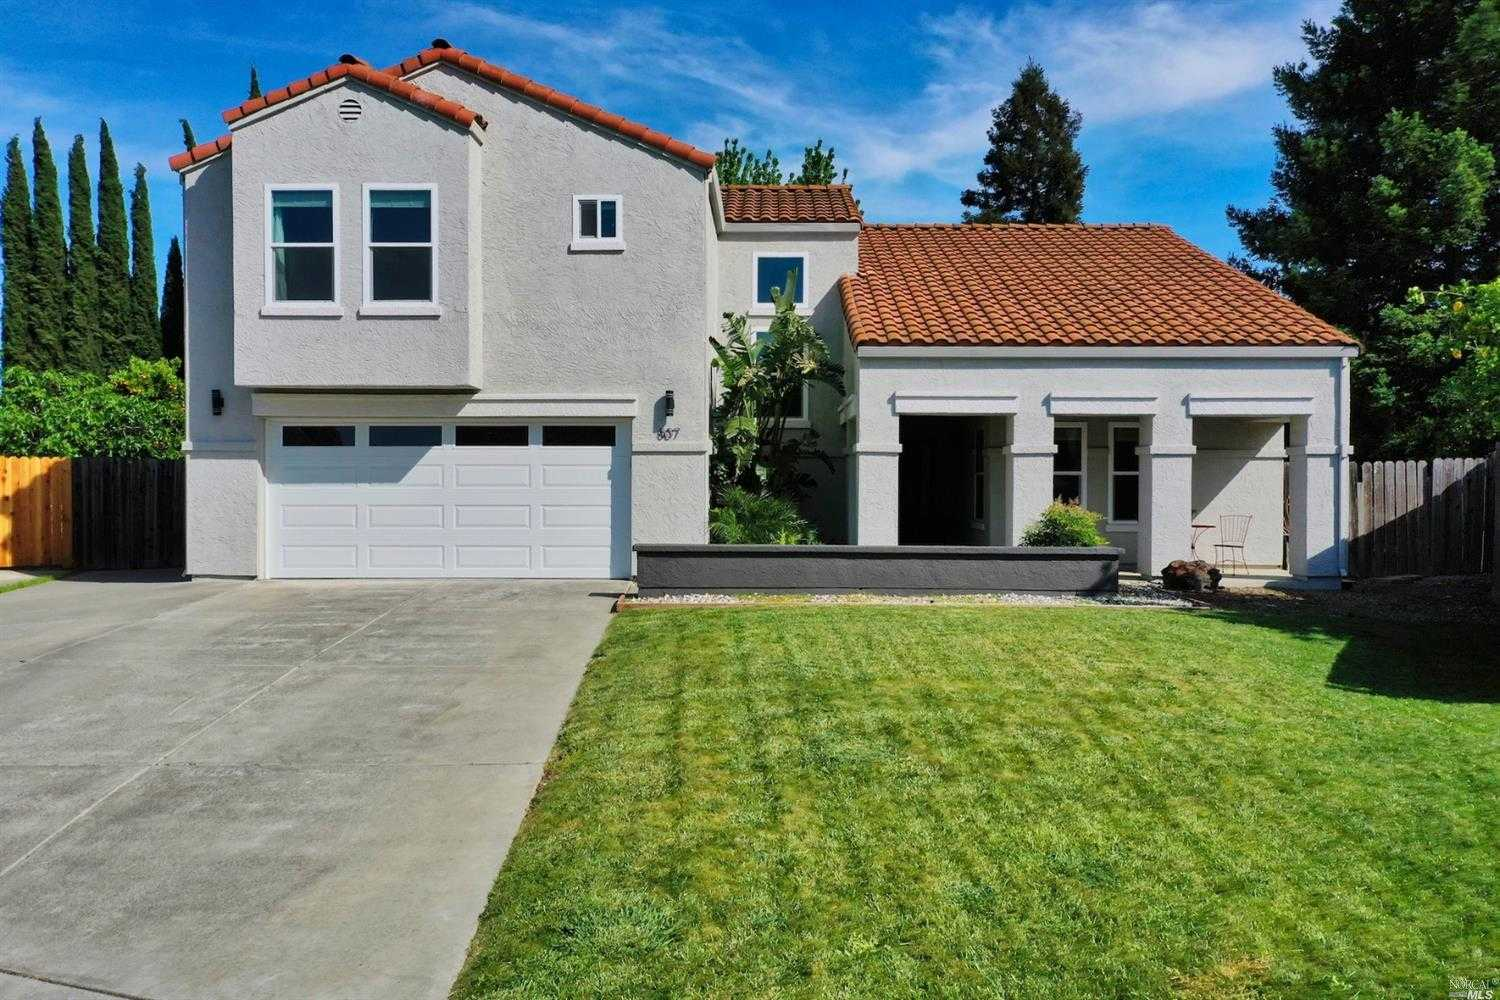 $640,000 - 4Br/3Ba -  for Sale in Vacaville